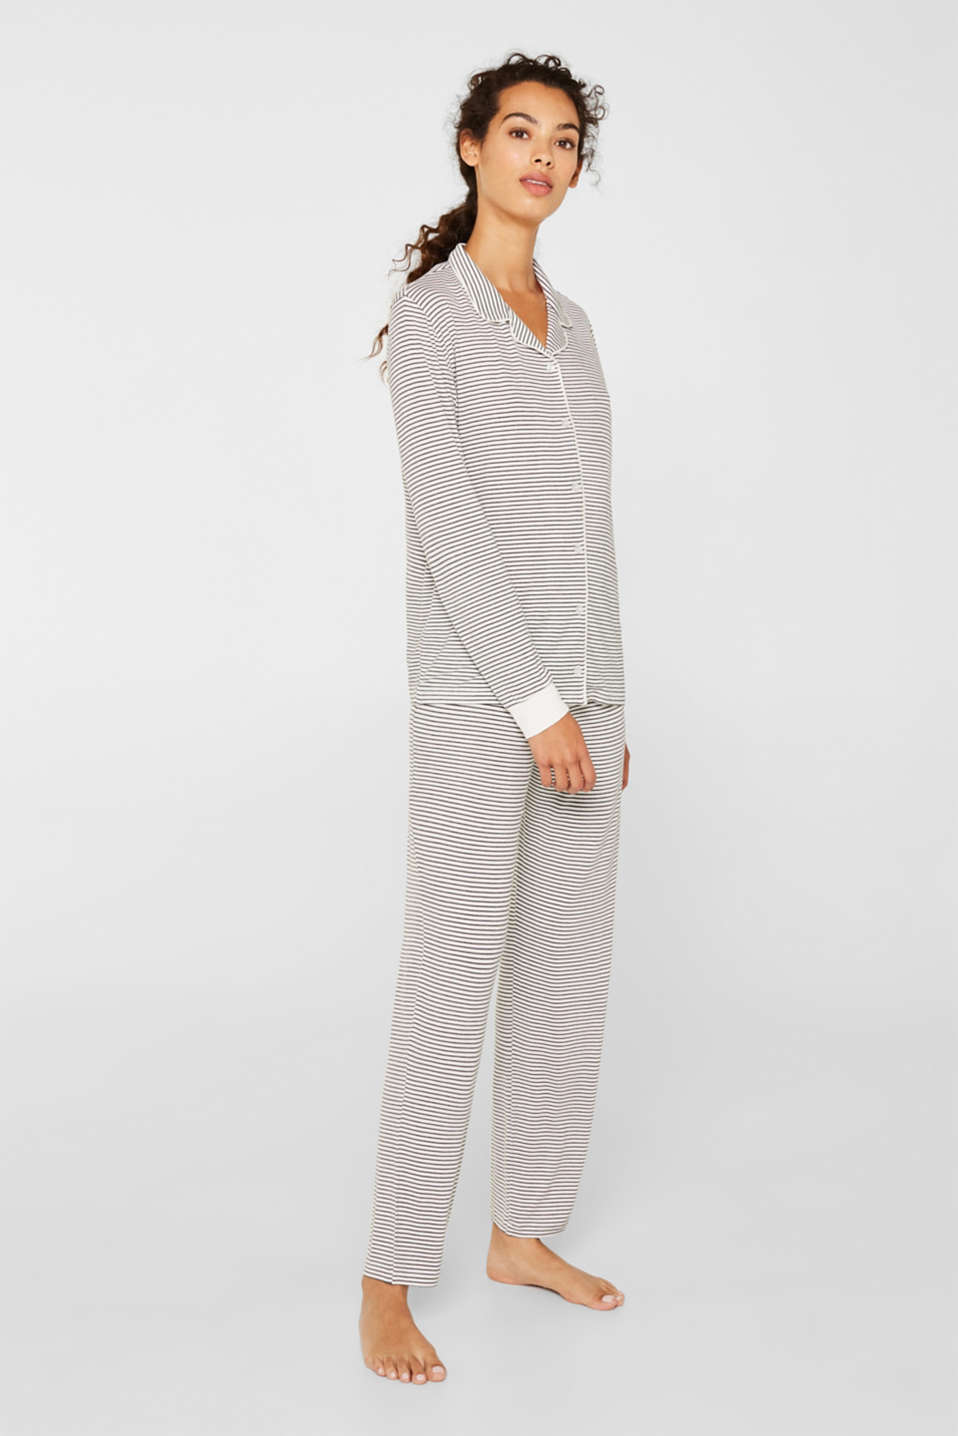 Stretch jersey pyjamas with stripes